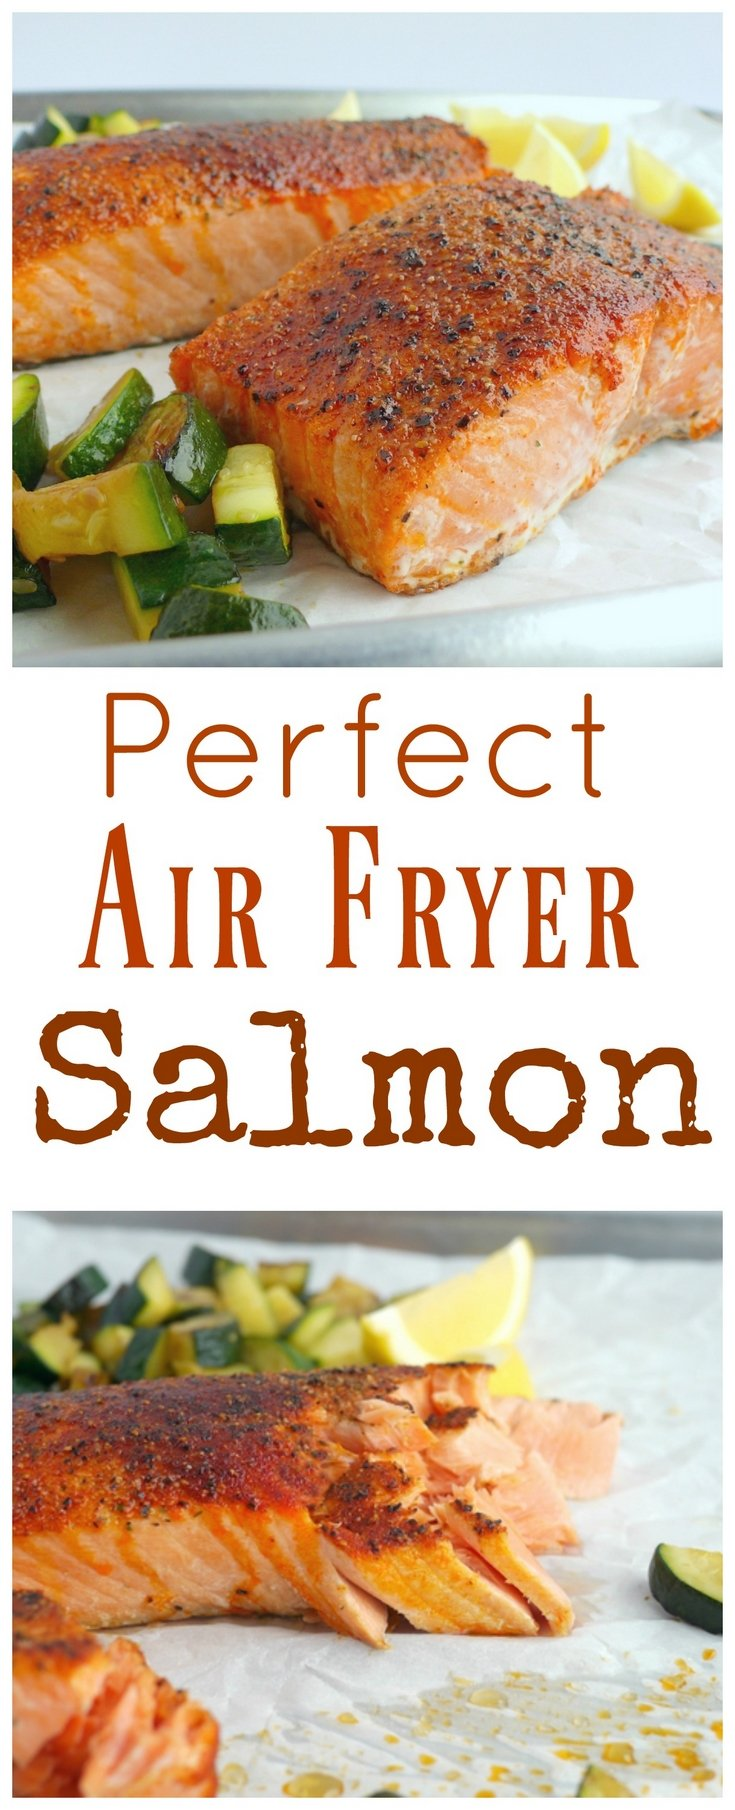 I would have never guessed making salmon in an air fryer would have produced the most tender and juicy salmon every time. I promise this Perfect Air Fryer Salmon will become your new way to conquer salmon in the kitchen from NoblePig.com. #airfryer #airfryerrecipe via @cmpollak1